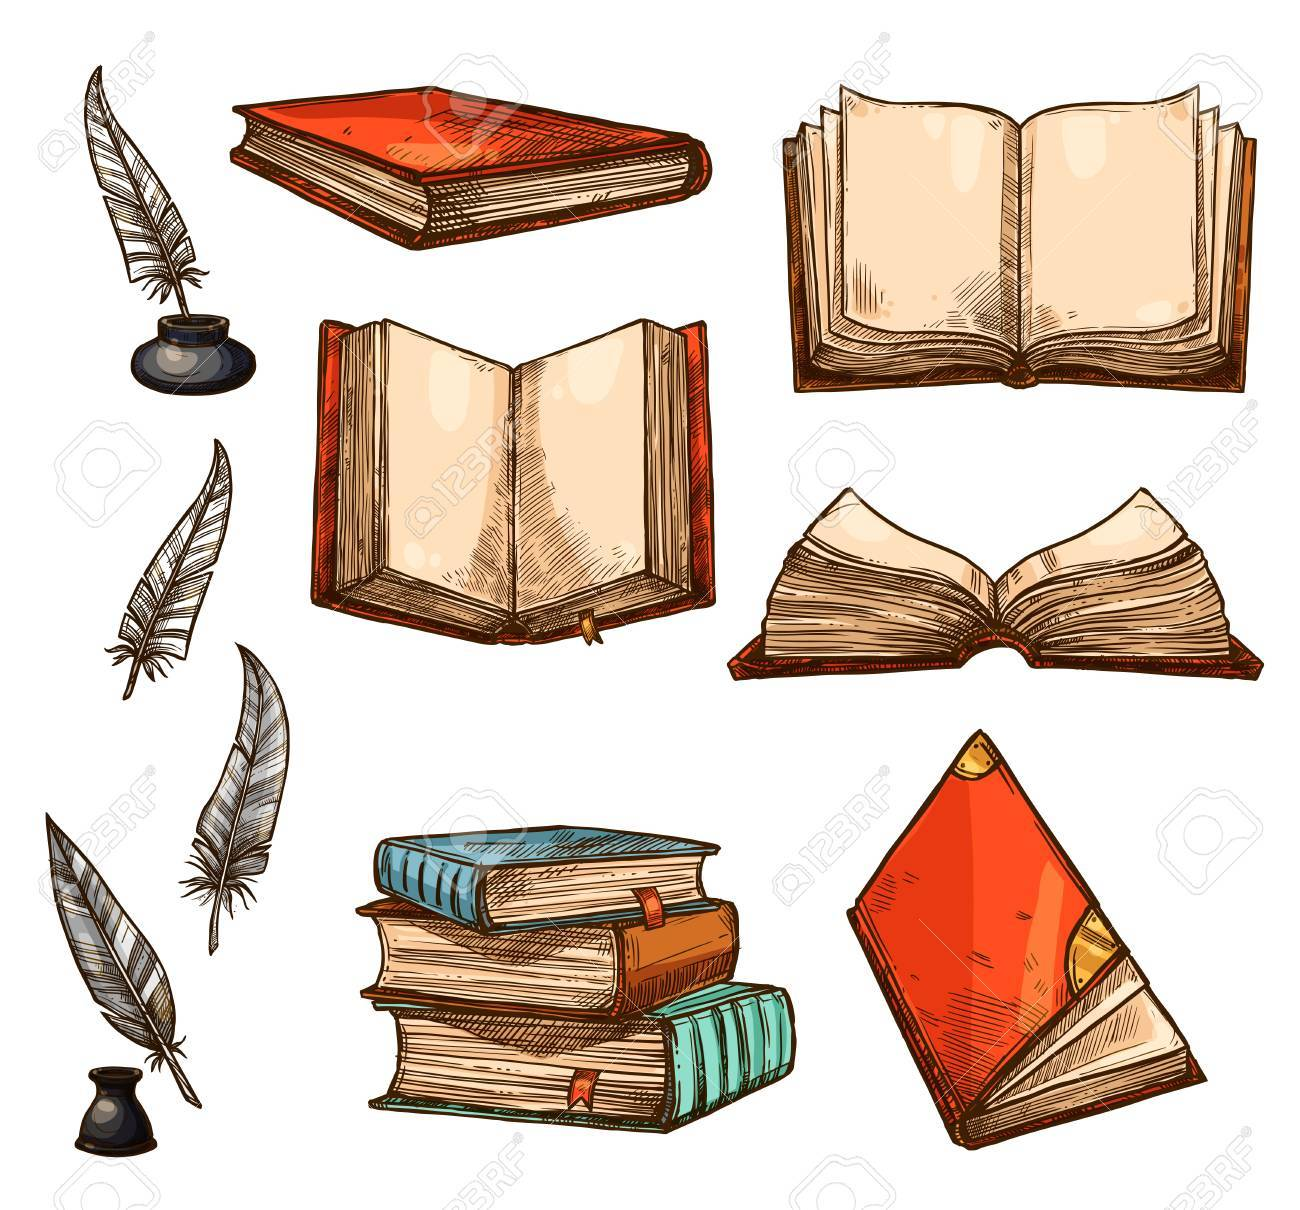 Vector icons of old books and manuscripts sketch - 87271213